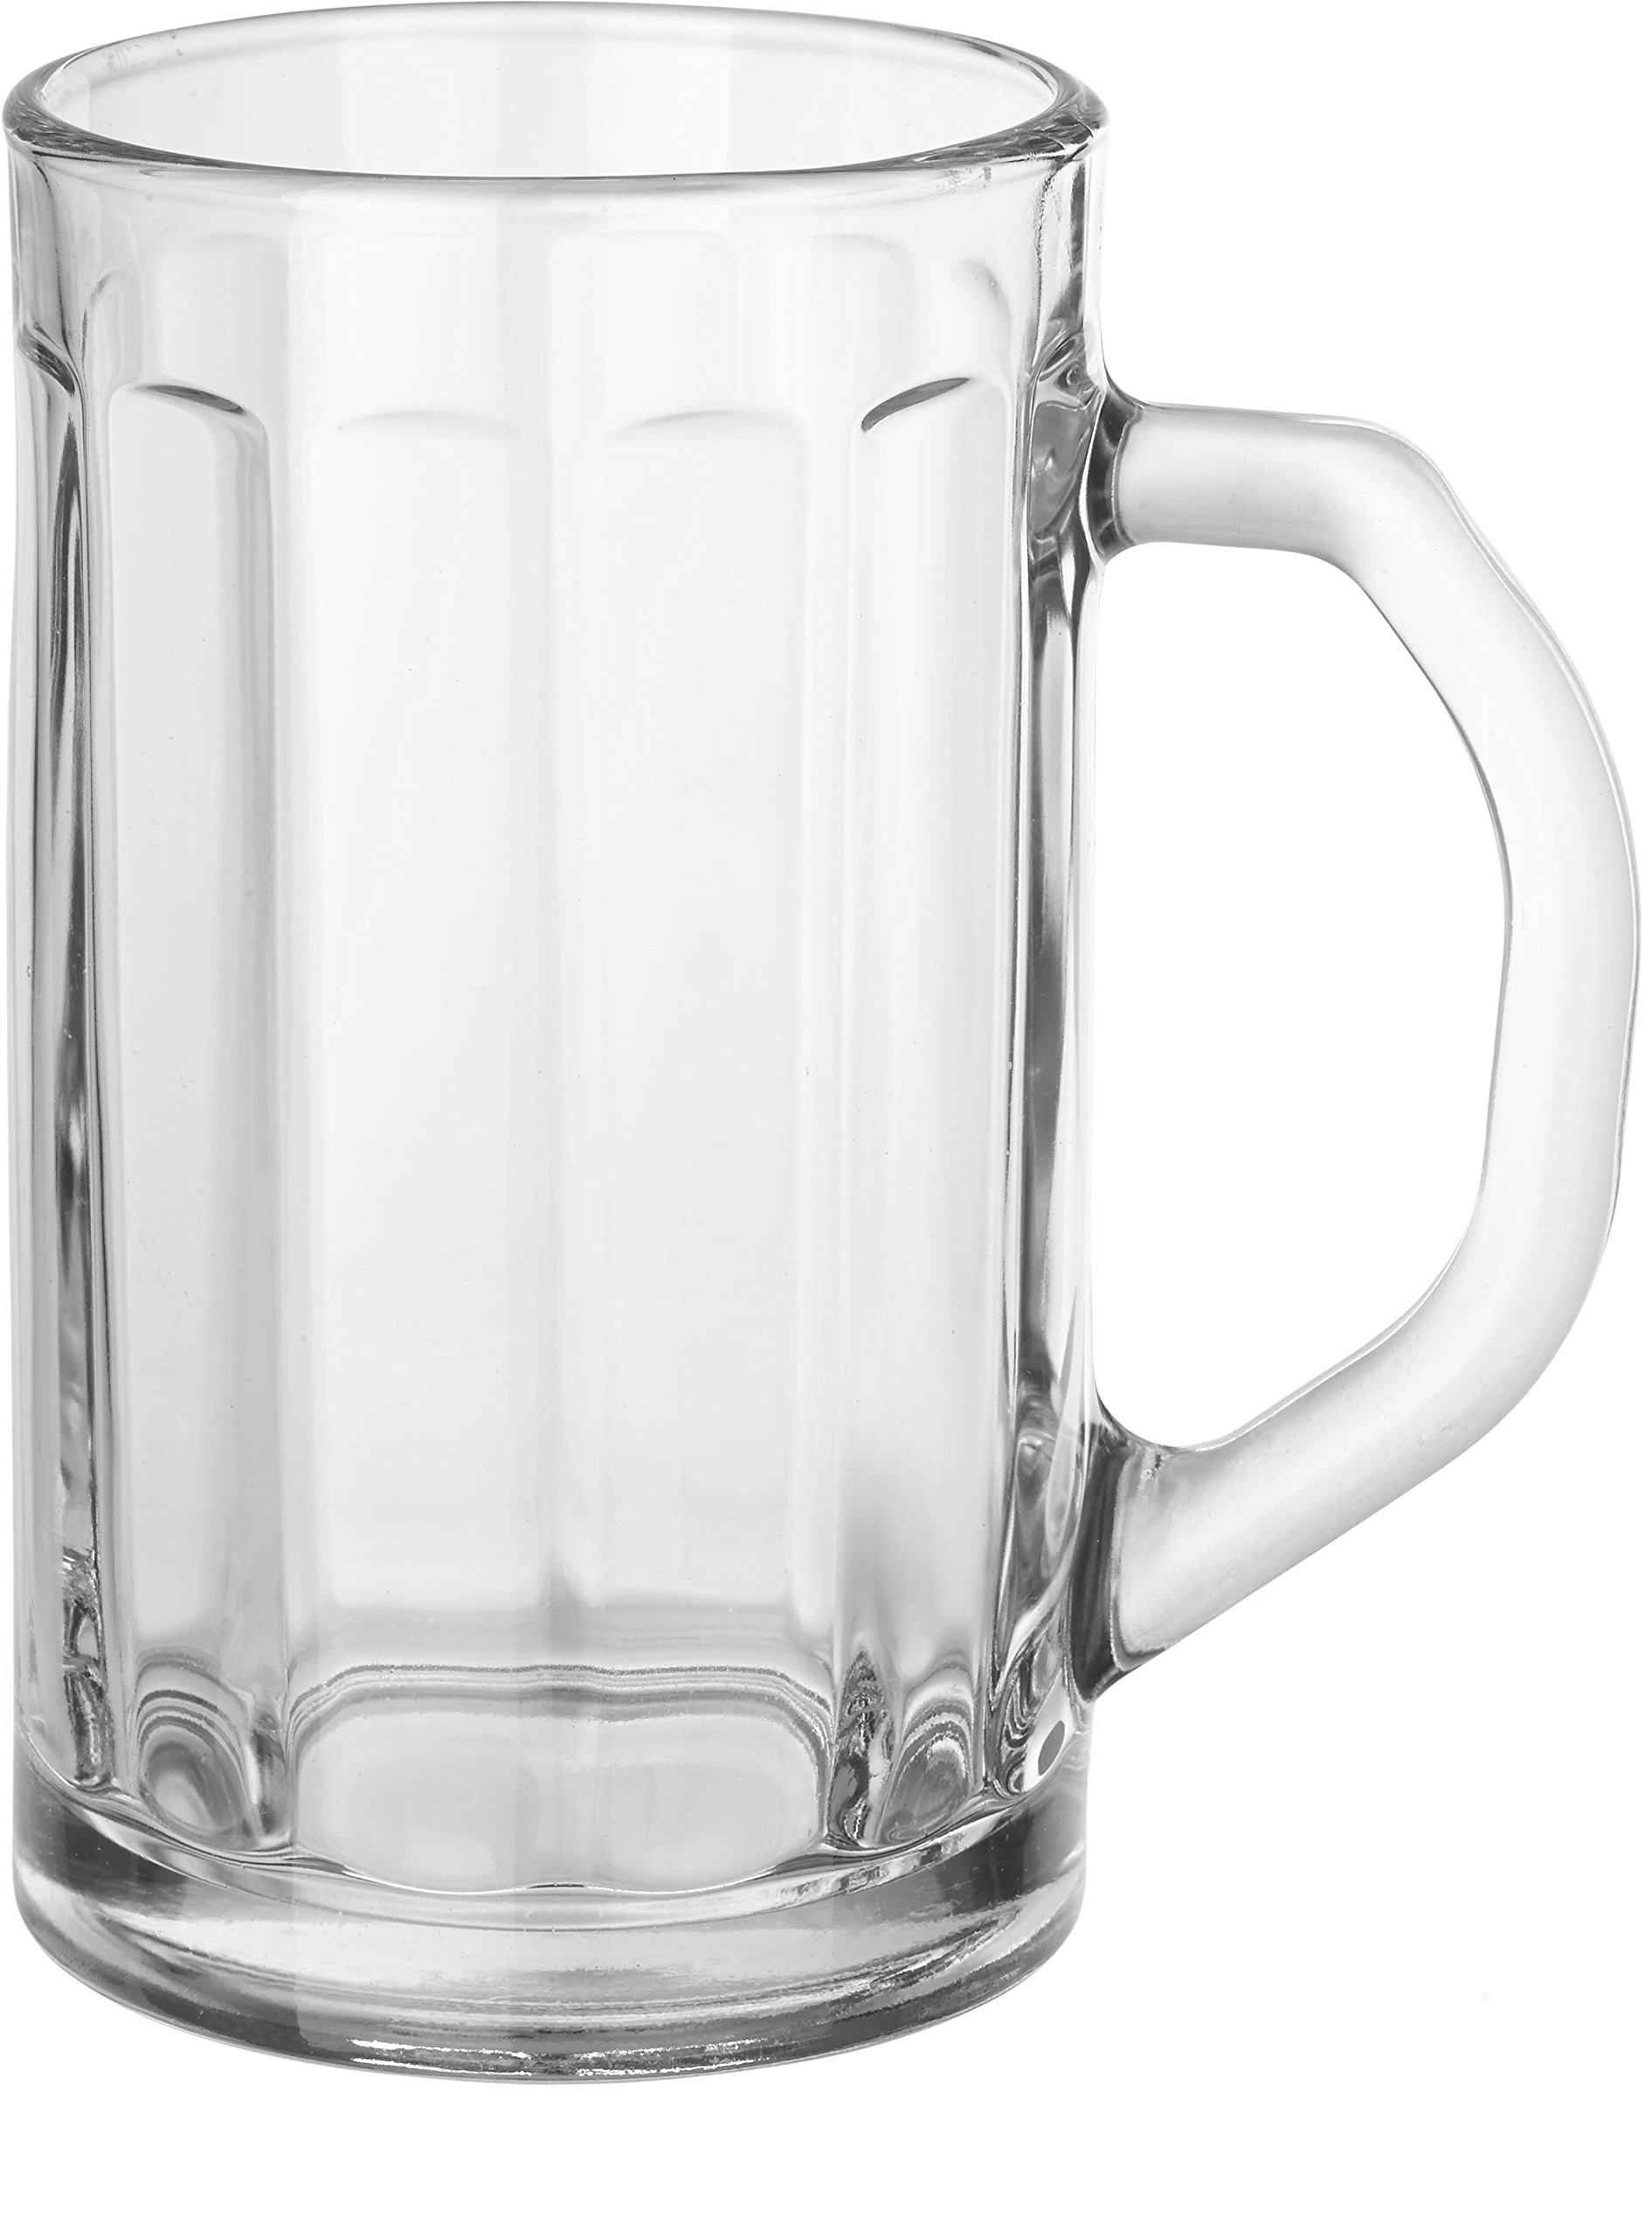 Circleware Downtown Pub Optic Glass Beer Mugs Beverage Drinking Glasses, Set of 4, 16.4 oz, Glassware Tumbler Cups for Water, Juice, Whiskey, Wine & Cocktail Beverages